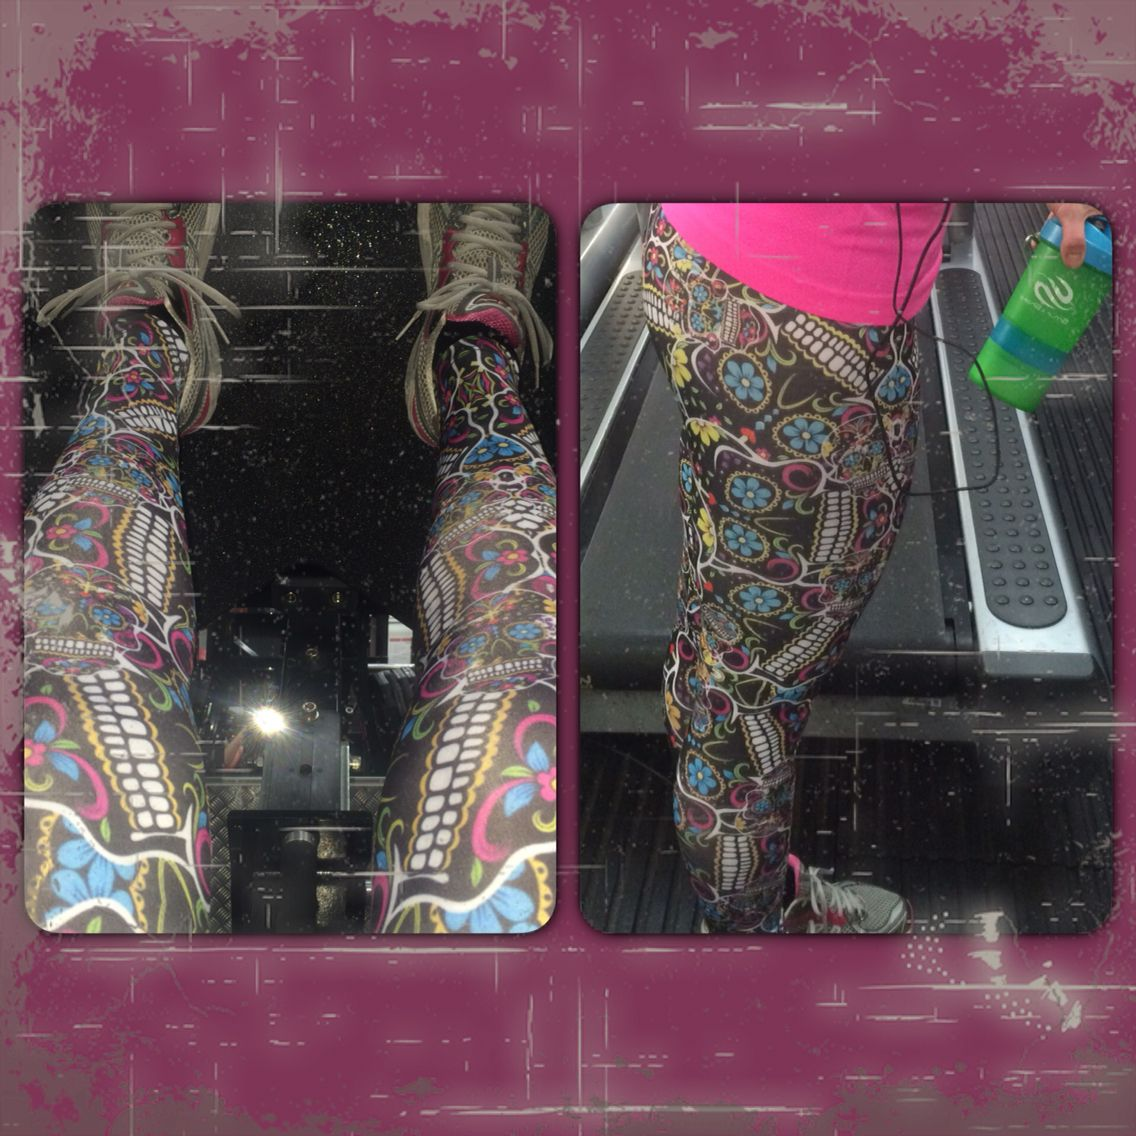 Brazilian fitness leggings from Sara Das Silva's website. It's written in lore that wearing a colourful outfit makes you lift heavier!!!